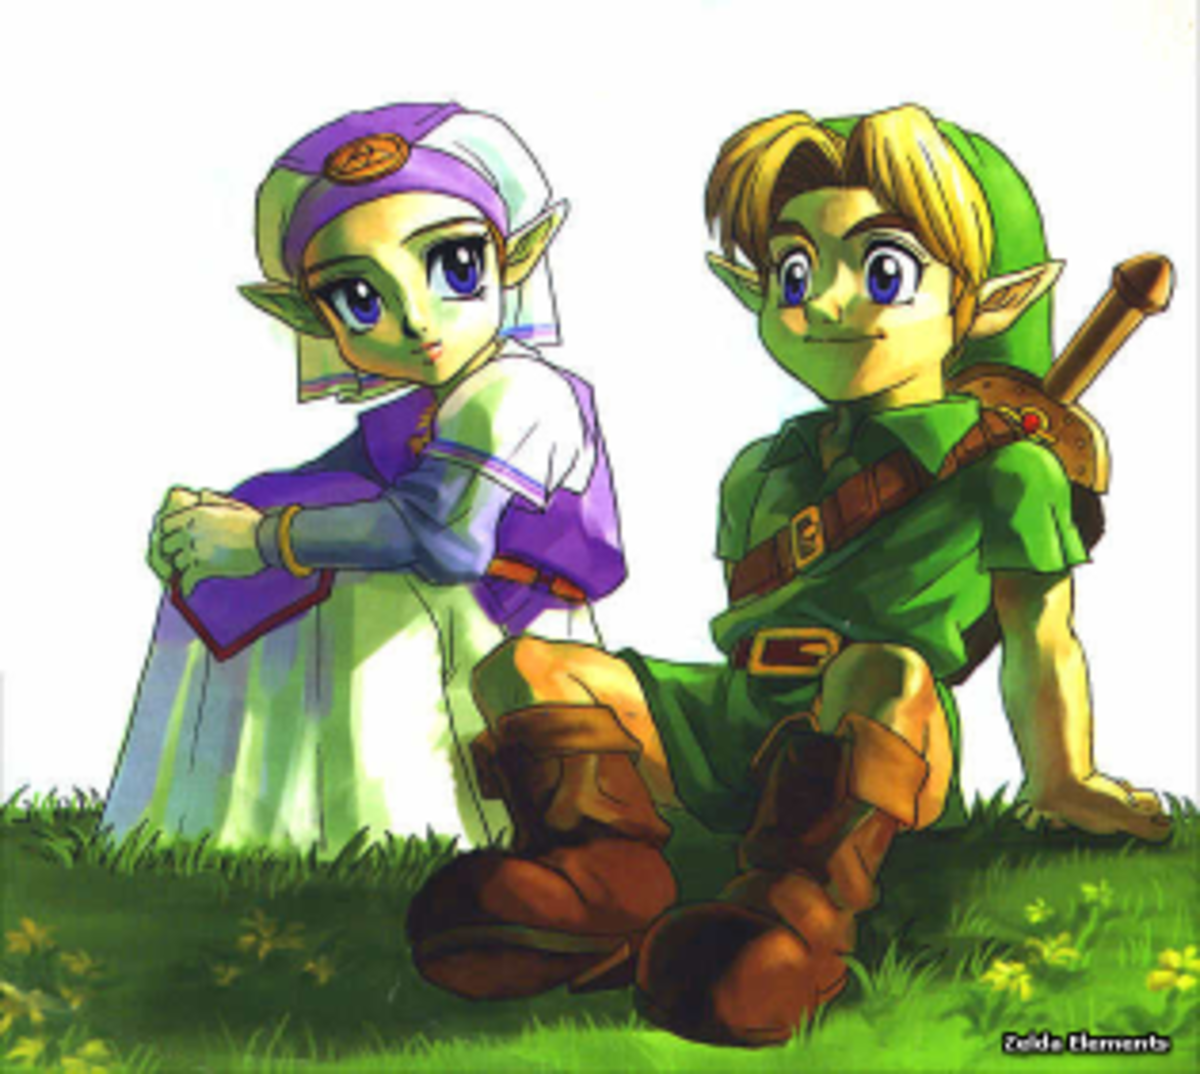 Link and Princess Zelda, the two most famous Hylians.